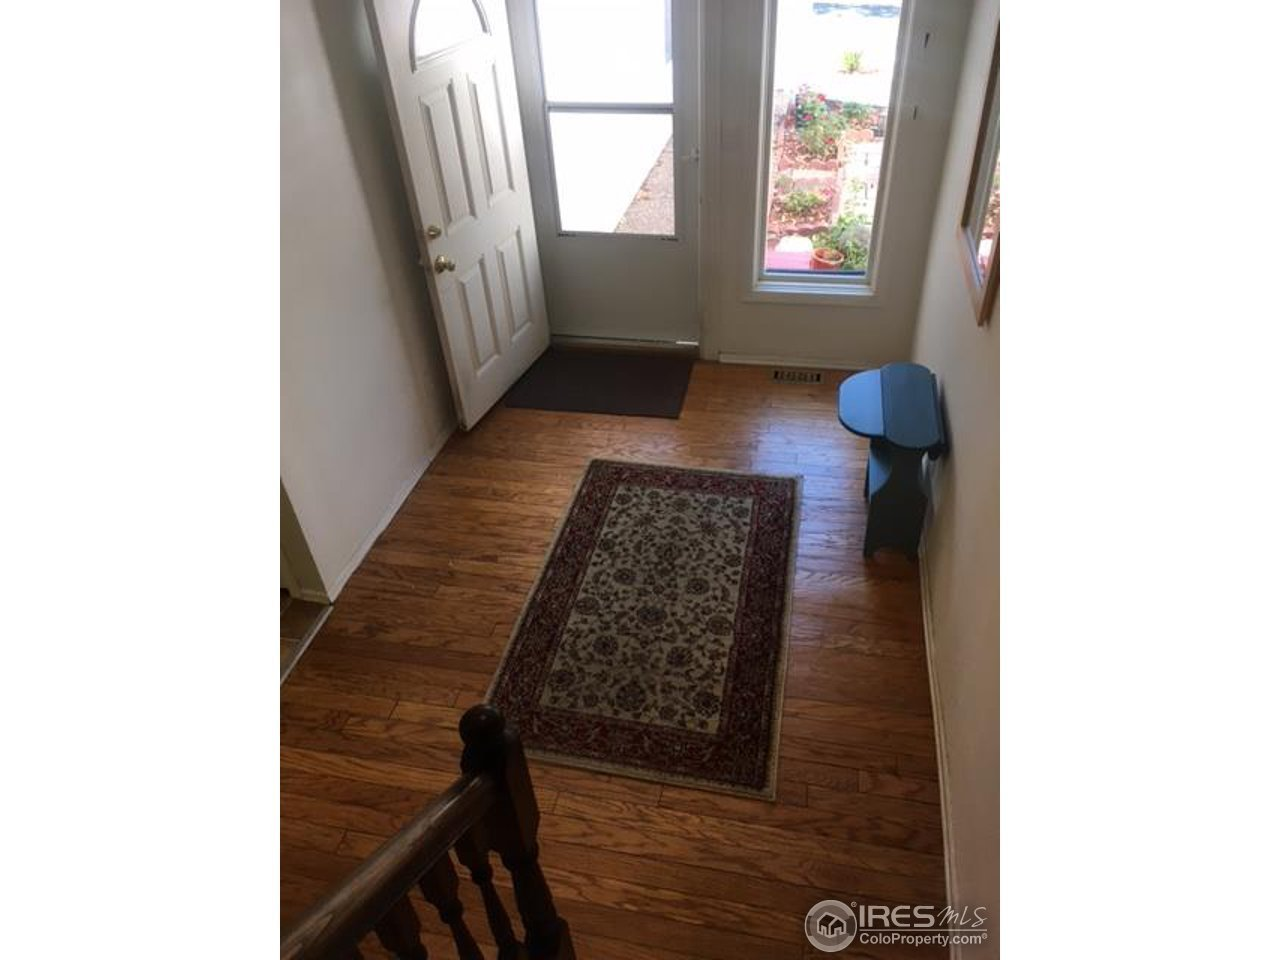 1975 28th ave #34, greeley, co 80634   mls# 830666   redfin